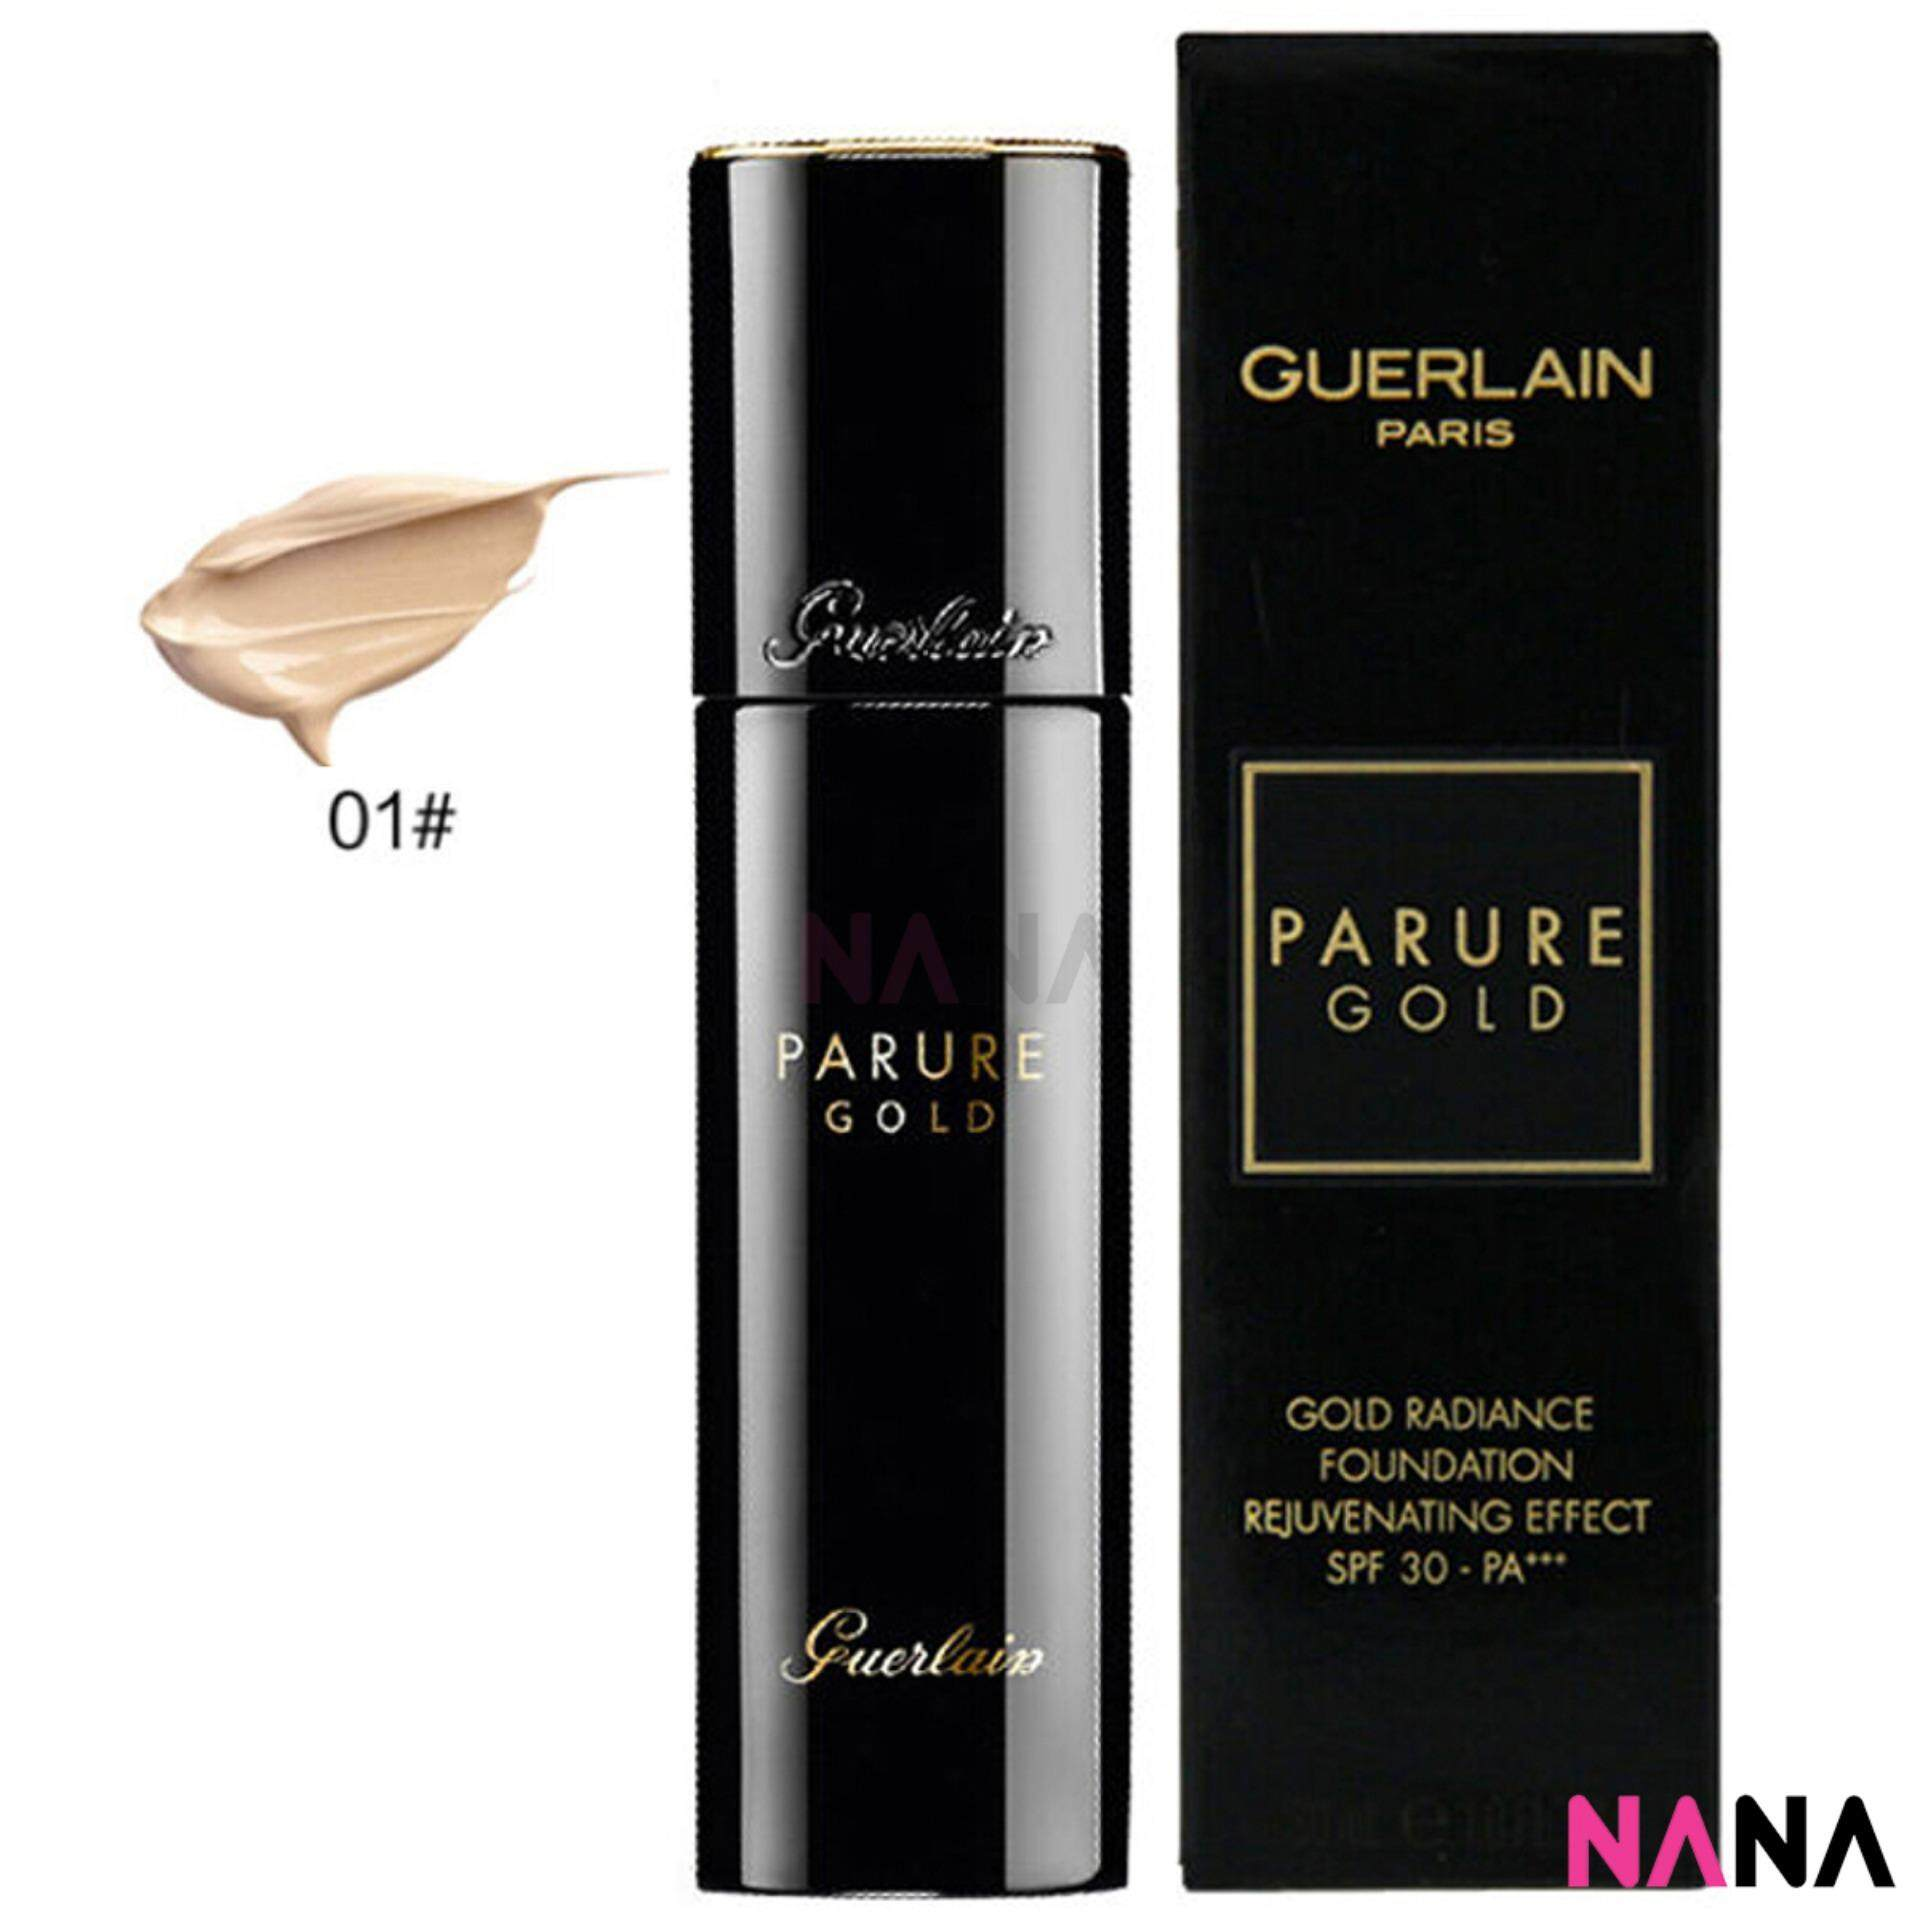 Guerlain Gold Radiance Foundation SPF30 PA+++ #1 Beige Pale